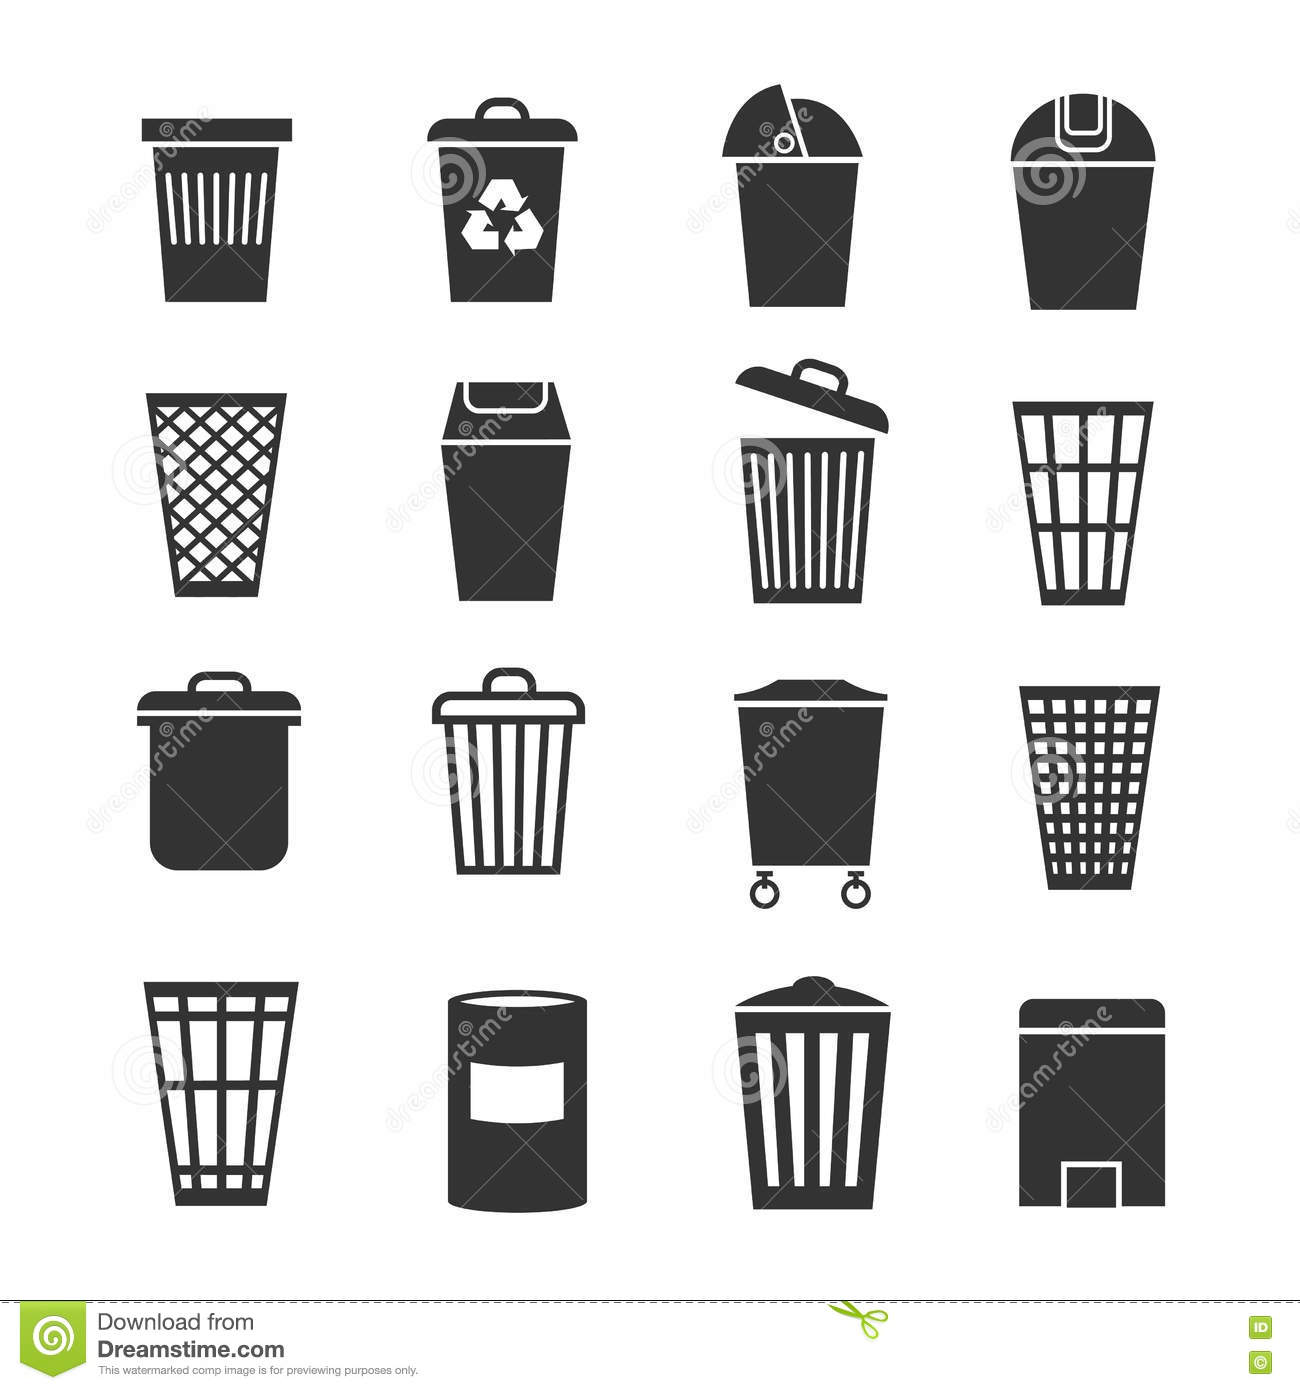 Trash Can Waste Basket And Bin Garbage Vector Icons